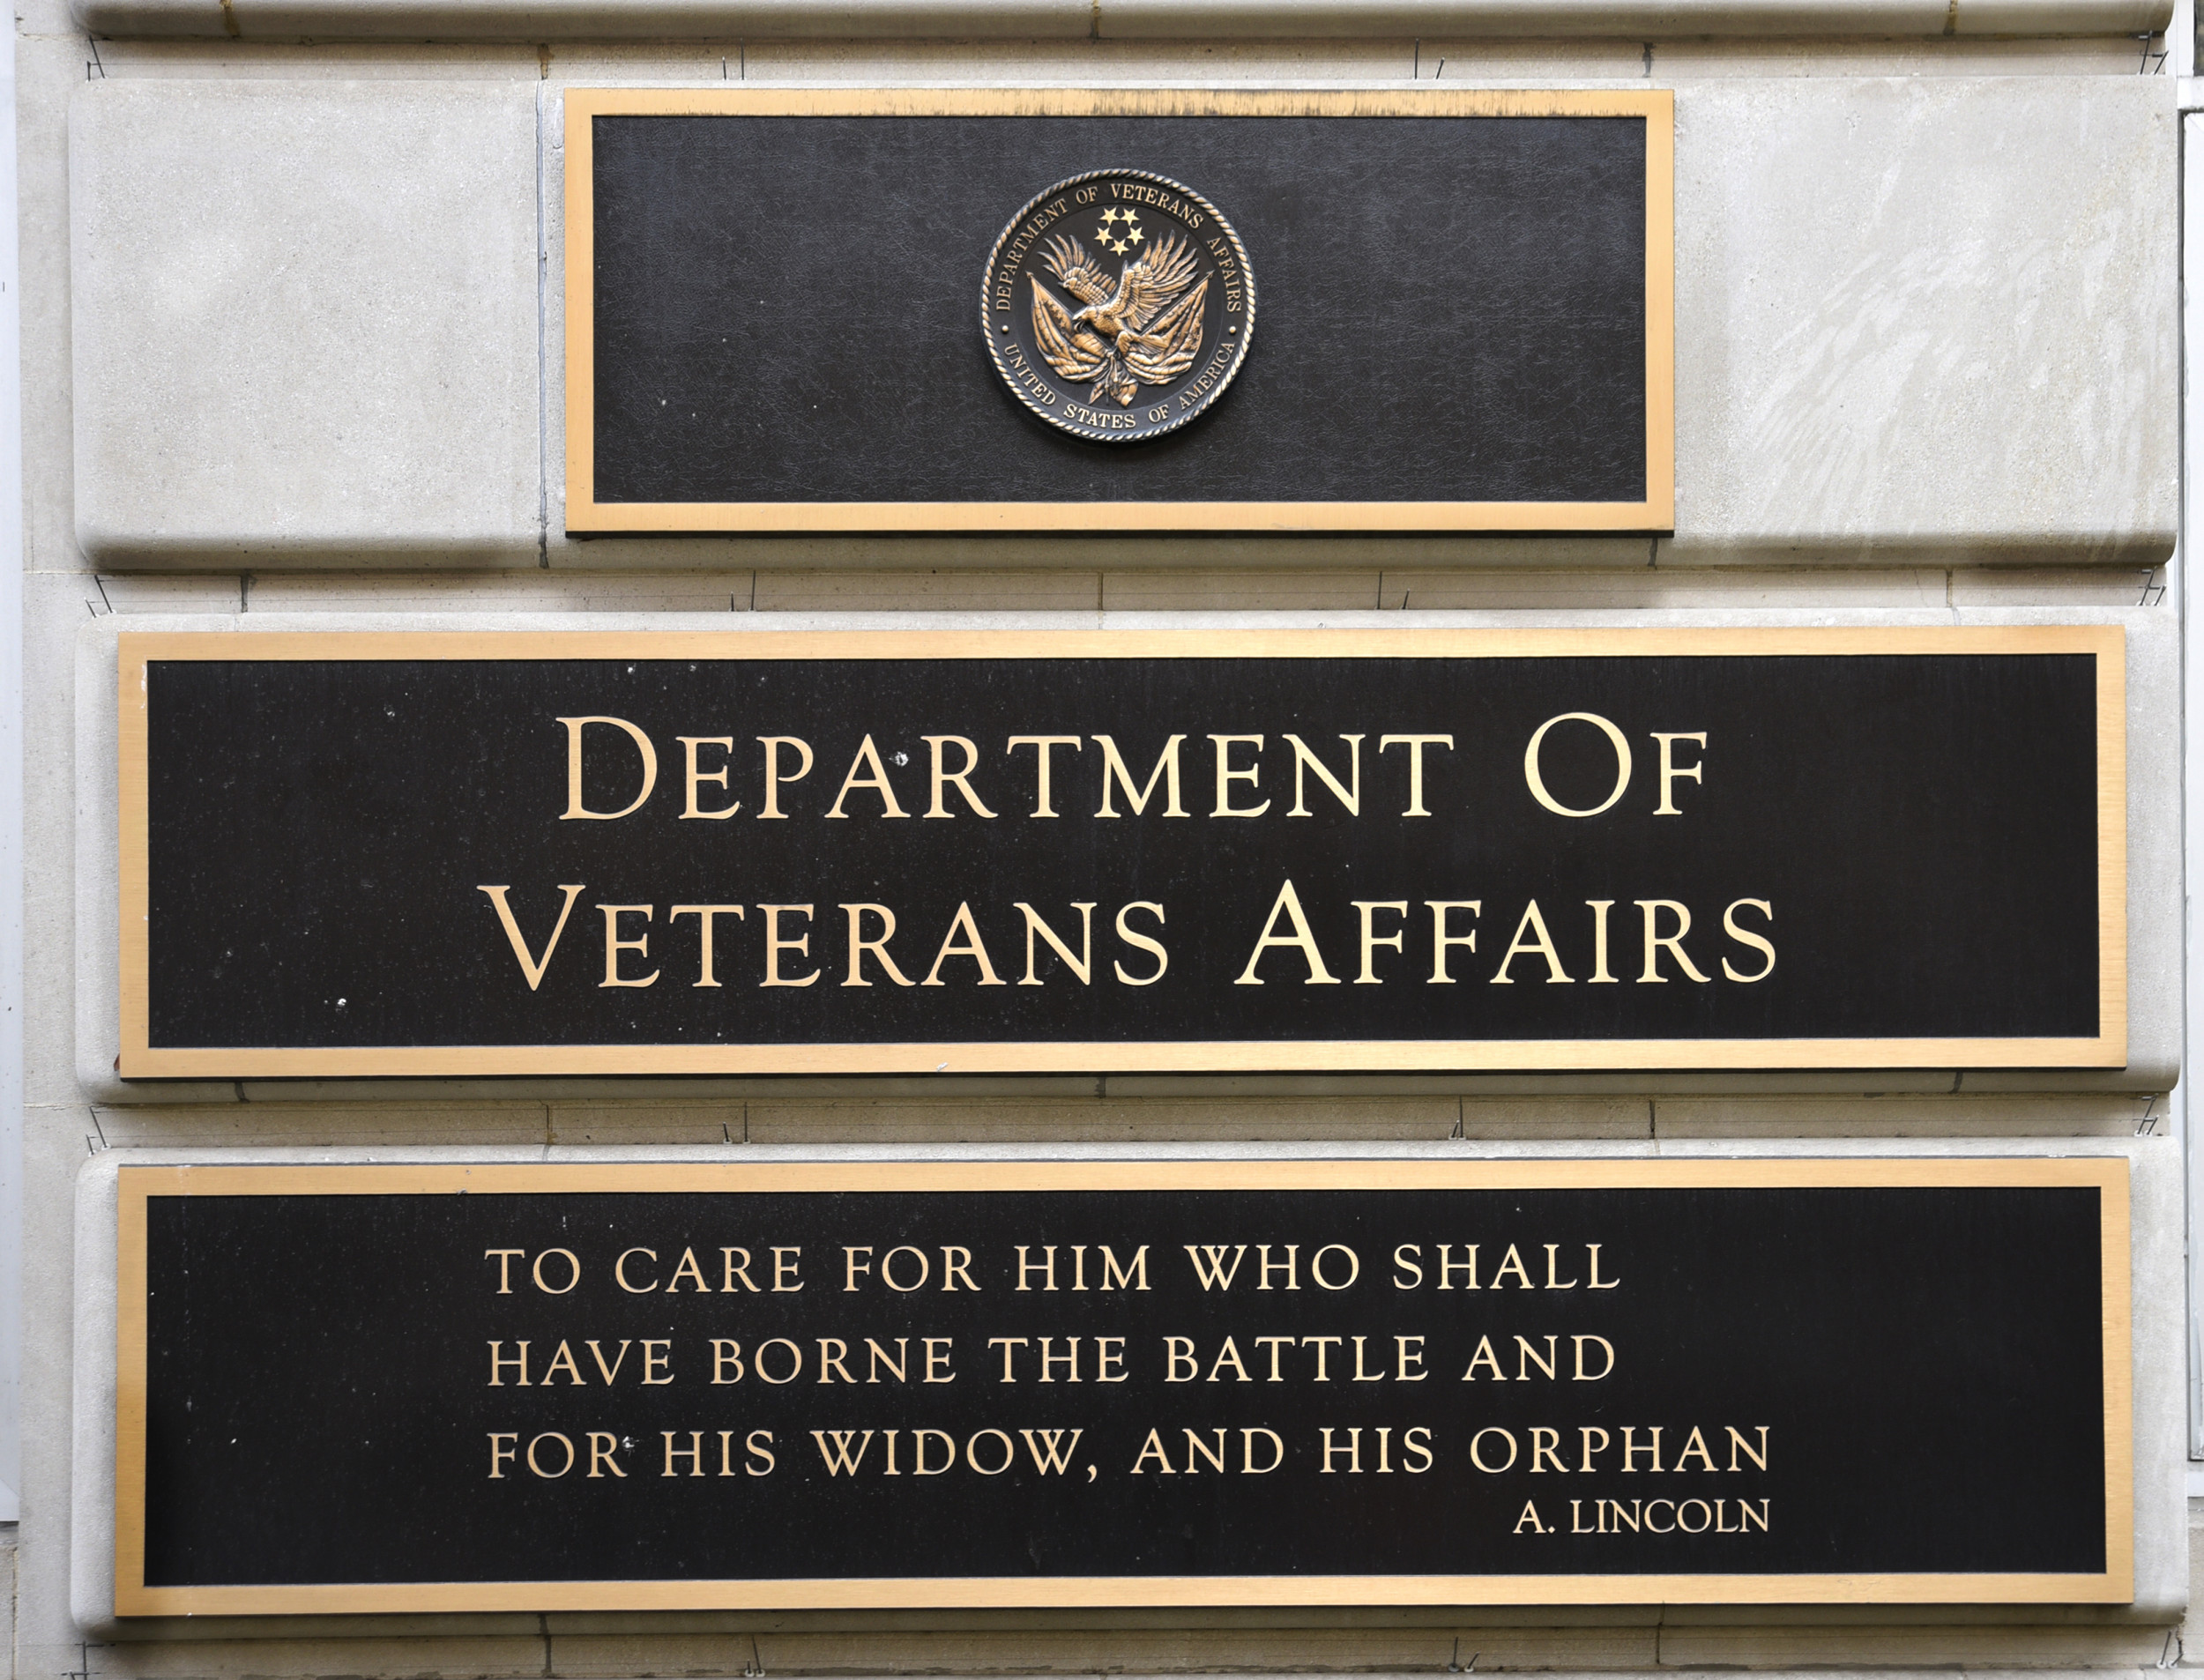 55% of VA staff have seen racial discrimination against vets, union says